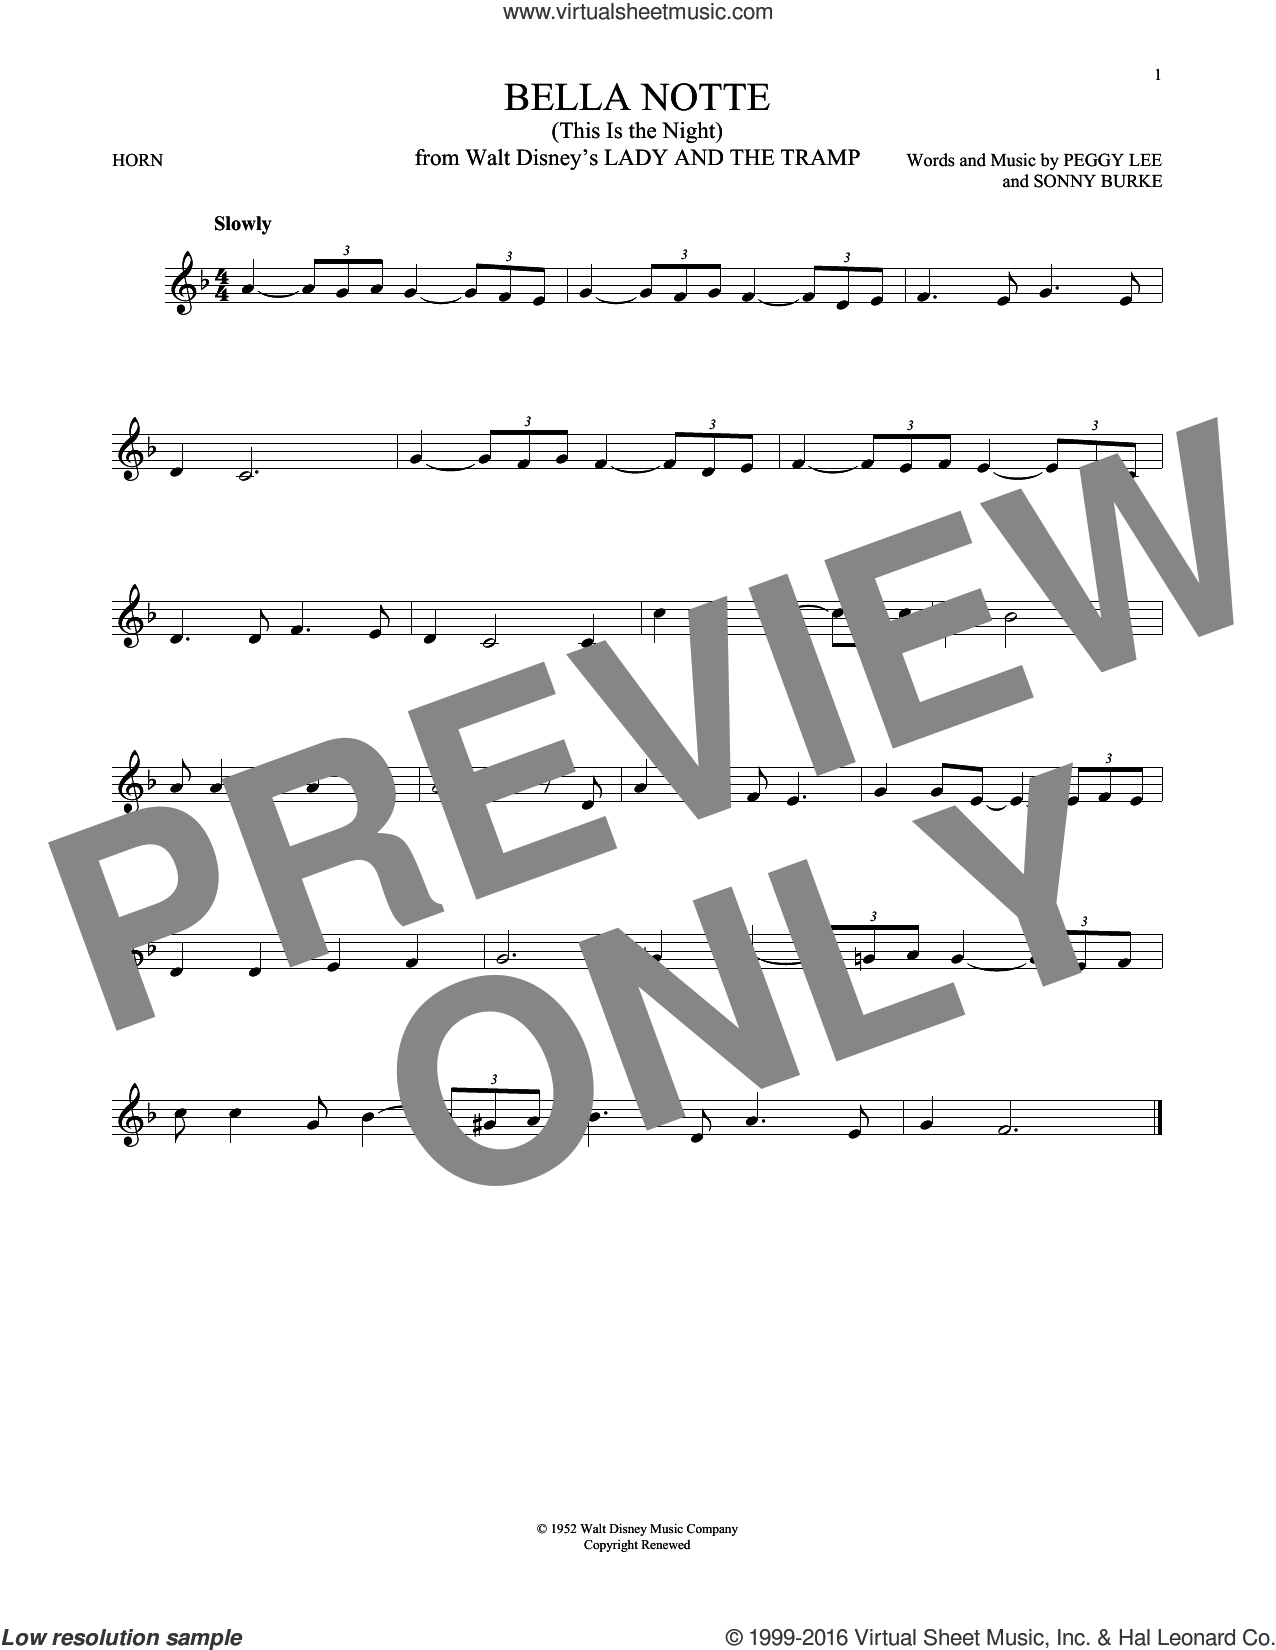 Bella Notte (from Lady And The Tramp) sheet music for horn solo by Peggy Lee, Peggy Lee & Sonny Burke and Sonny Burke, intermediate skill level